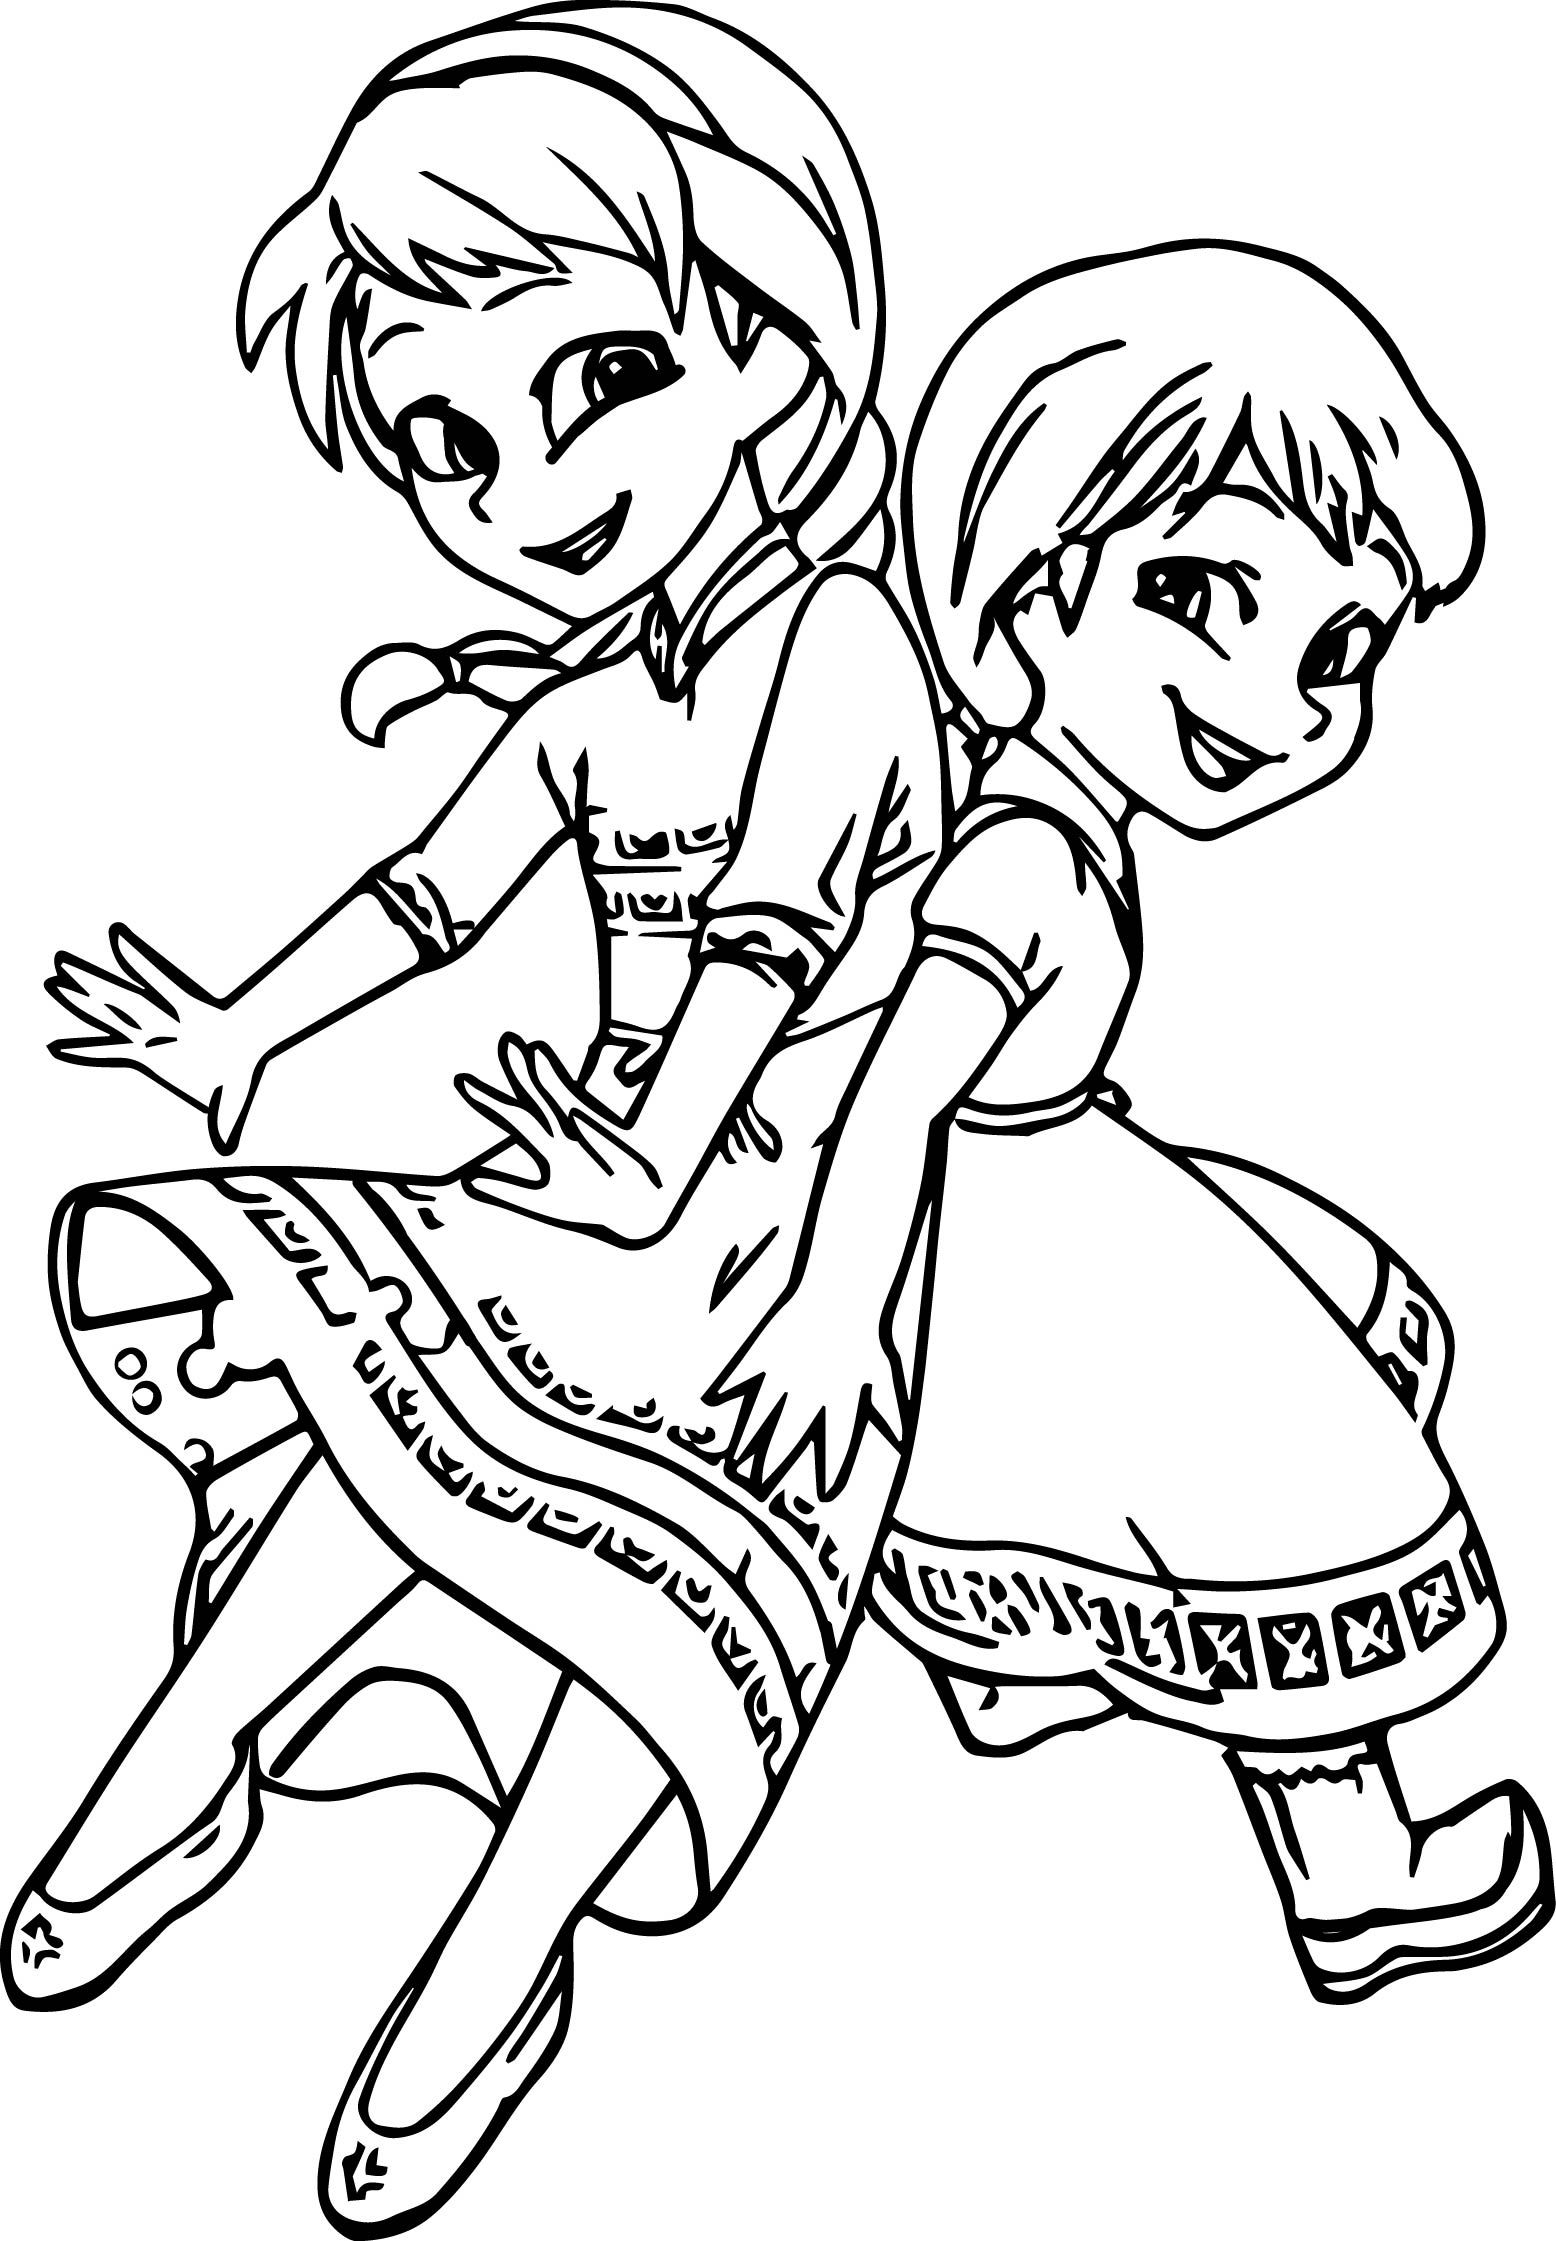 Young Elsa And Anna Printable Coloring Page Elsa Coloring Pages Elsa Coloring Cartoon Coloring Pages